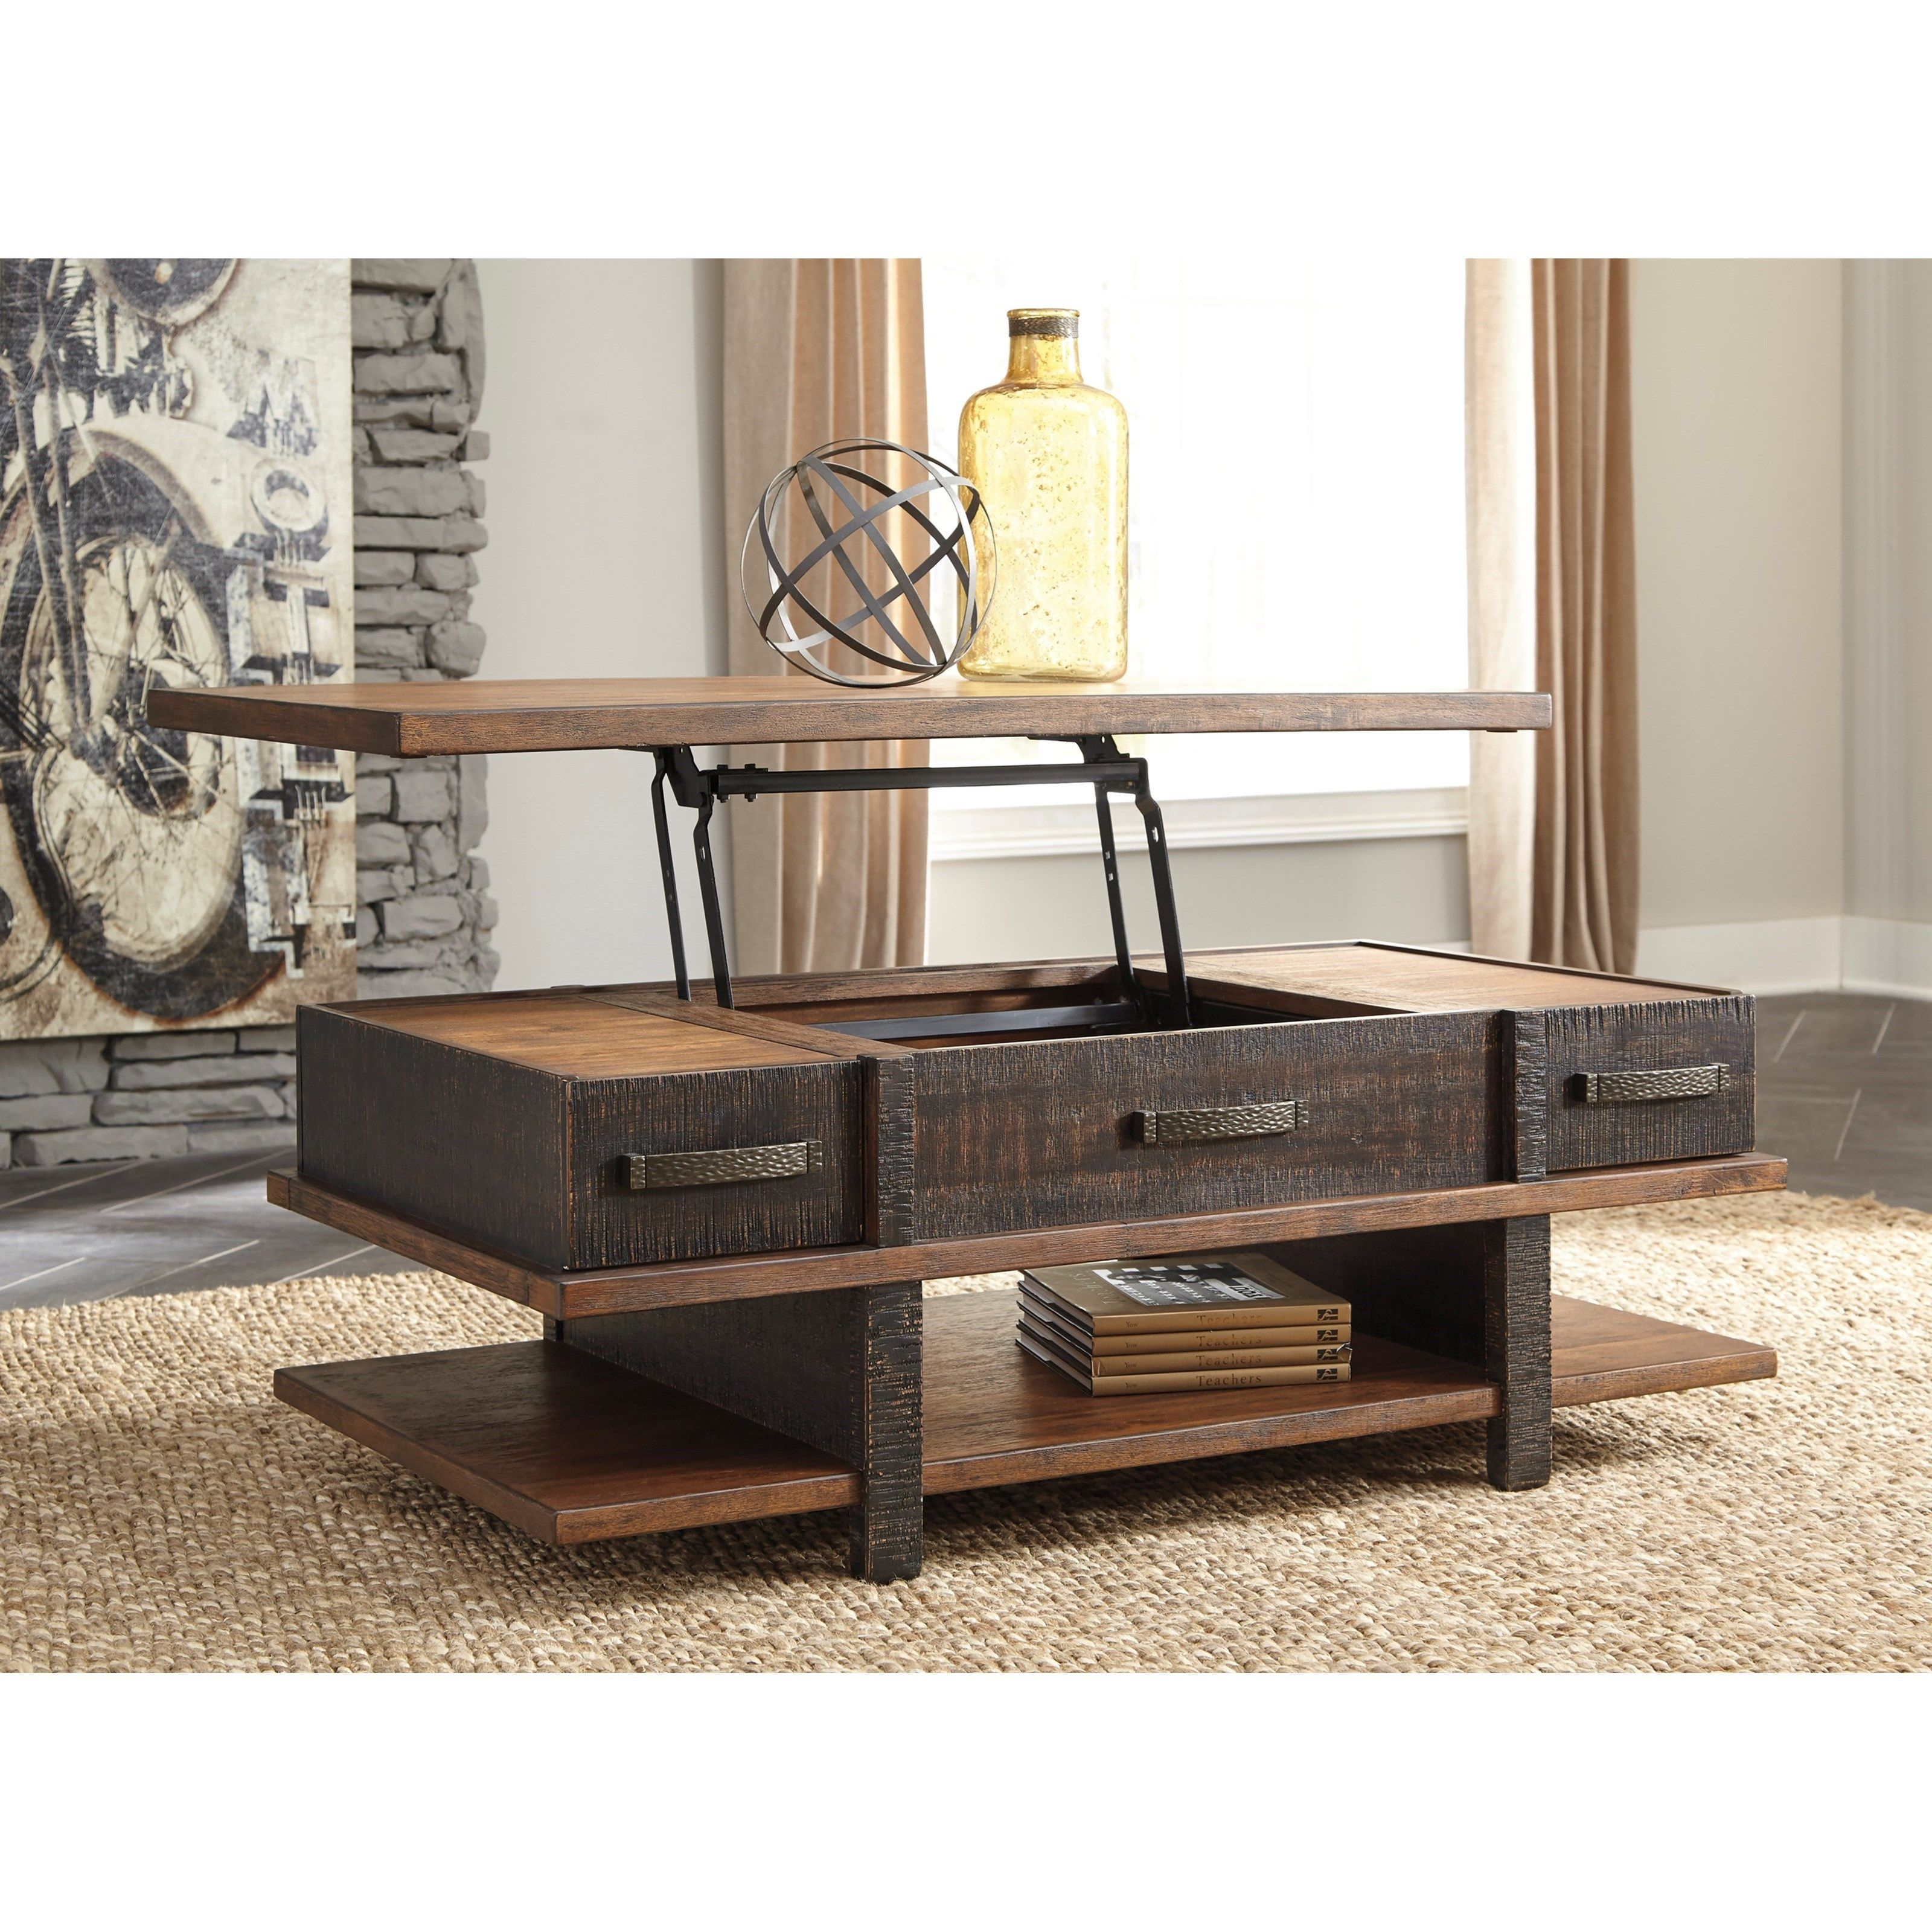 Lift Top Cocktail Table With 2 Drawers And Shelf Coffee Table Lift Top Coffee Table Coffee Table With Storage [ 3200 x 3200 Pixel ]